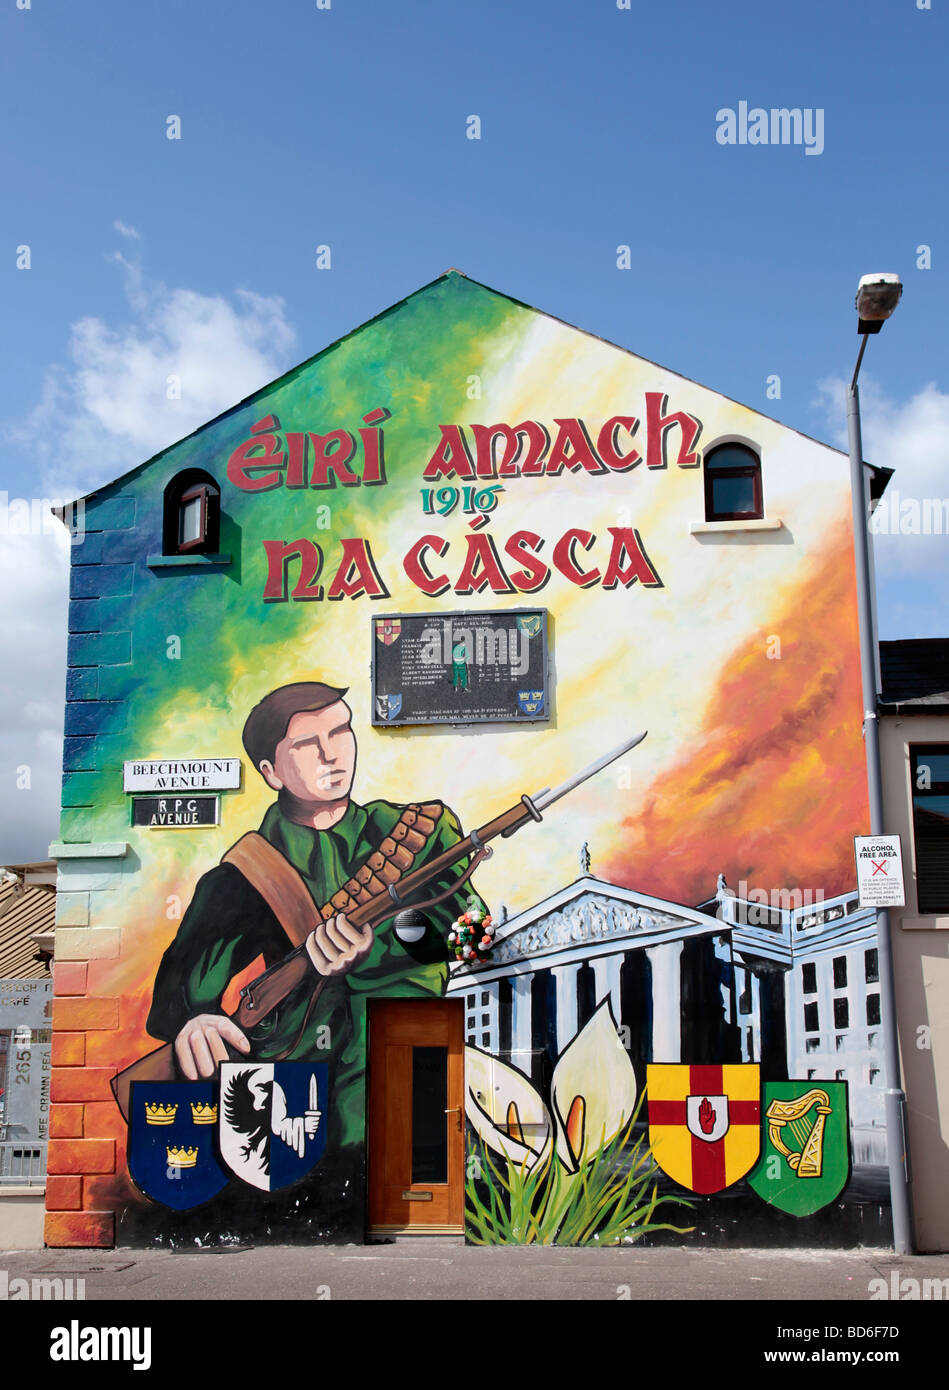 Mural in the Falls Road area of West Belfast, commemmorating the Easter Uprising of 1916 - Eiri amach na casca in - Stock Image